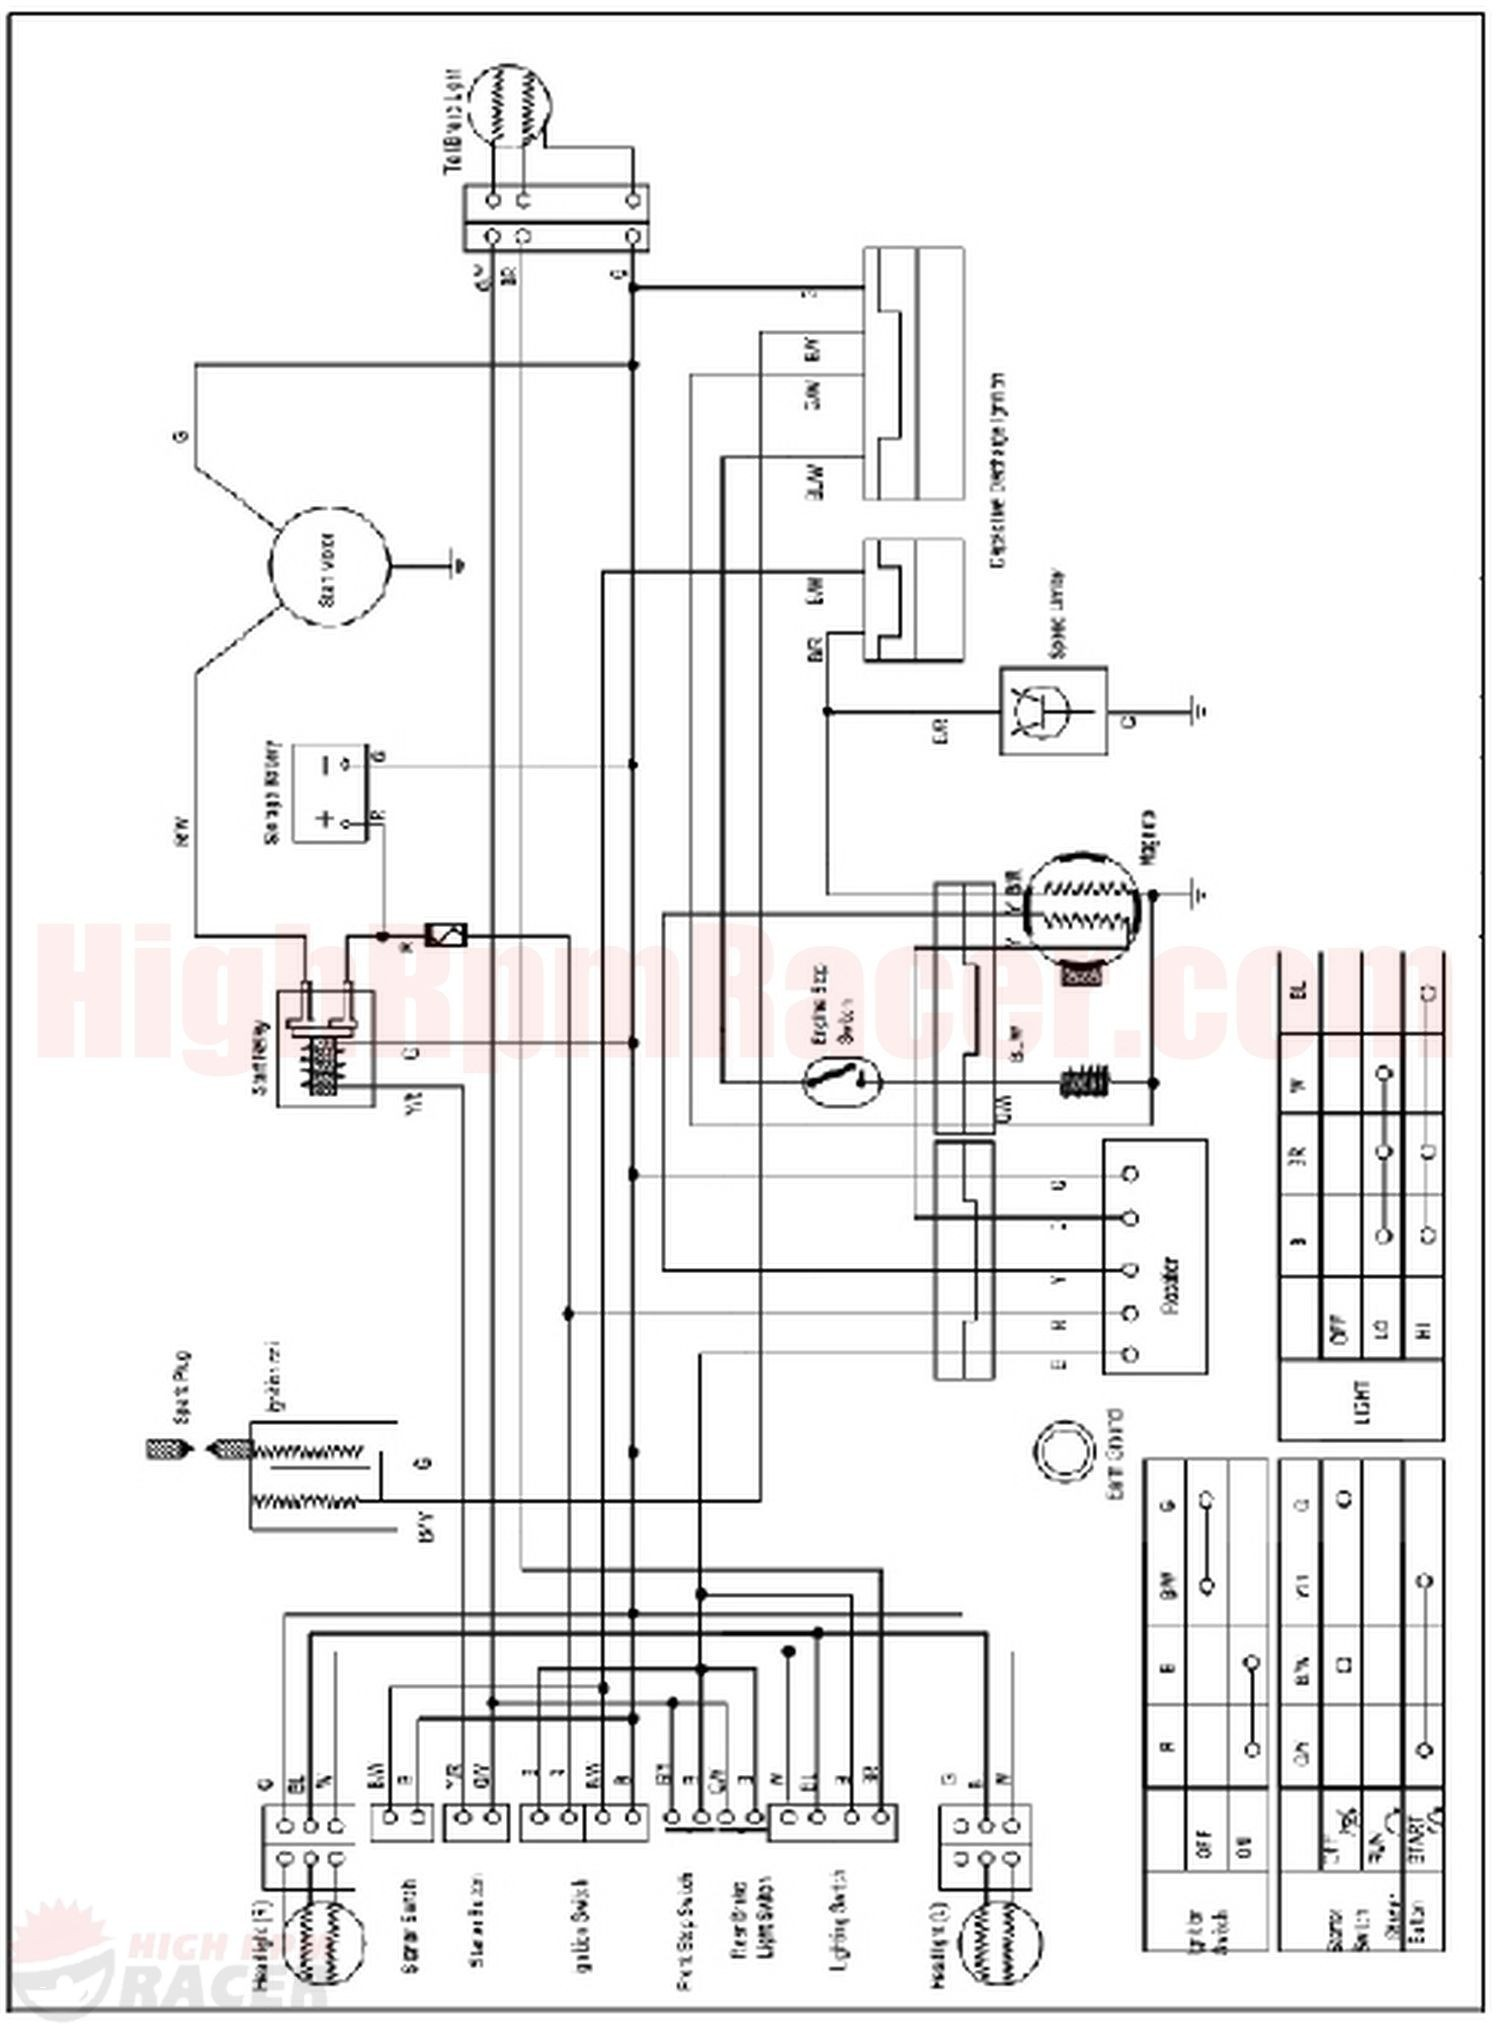 Wiring Diagram For 110cc 4 Wheeler Inspirational 110cc Chinese Atv Wiring Diagram Originalstylophone – Wiring Diagram